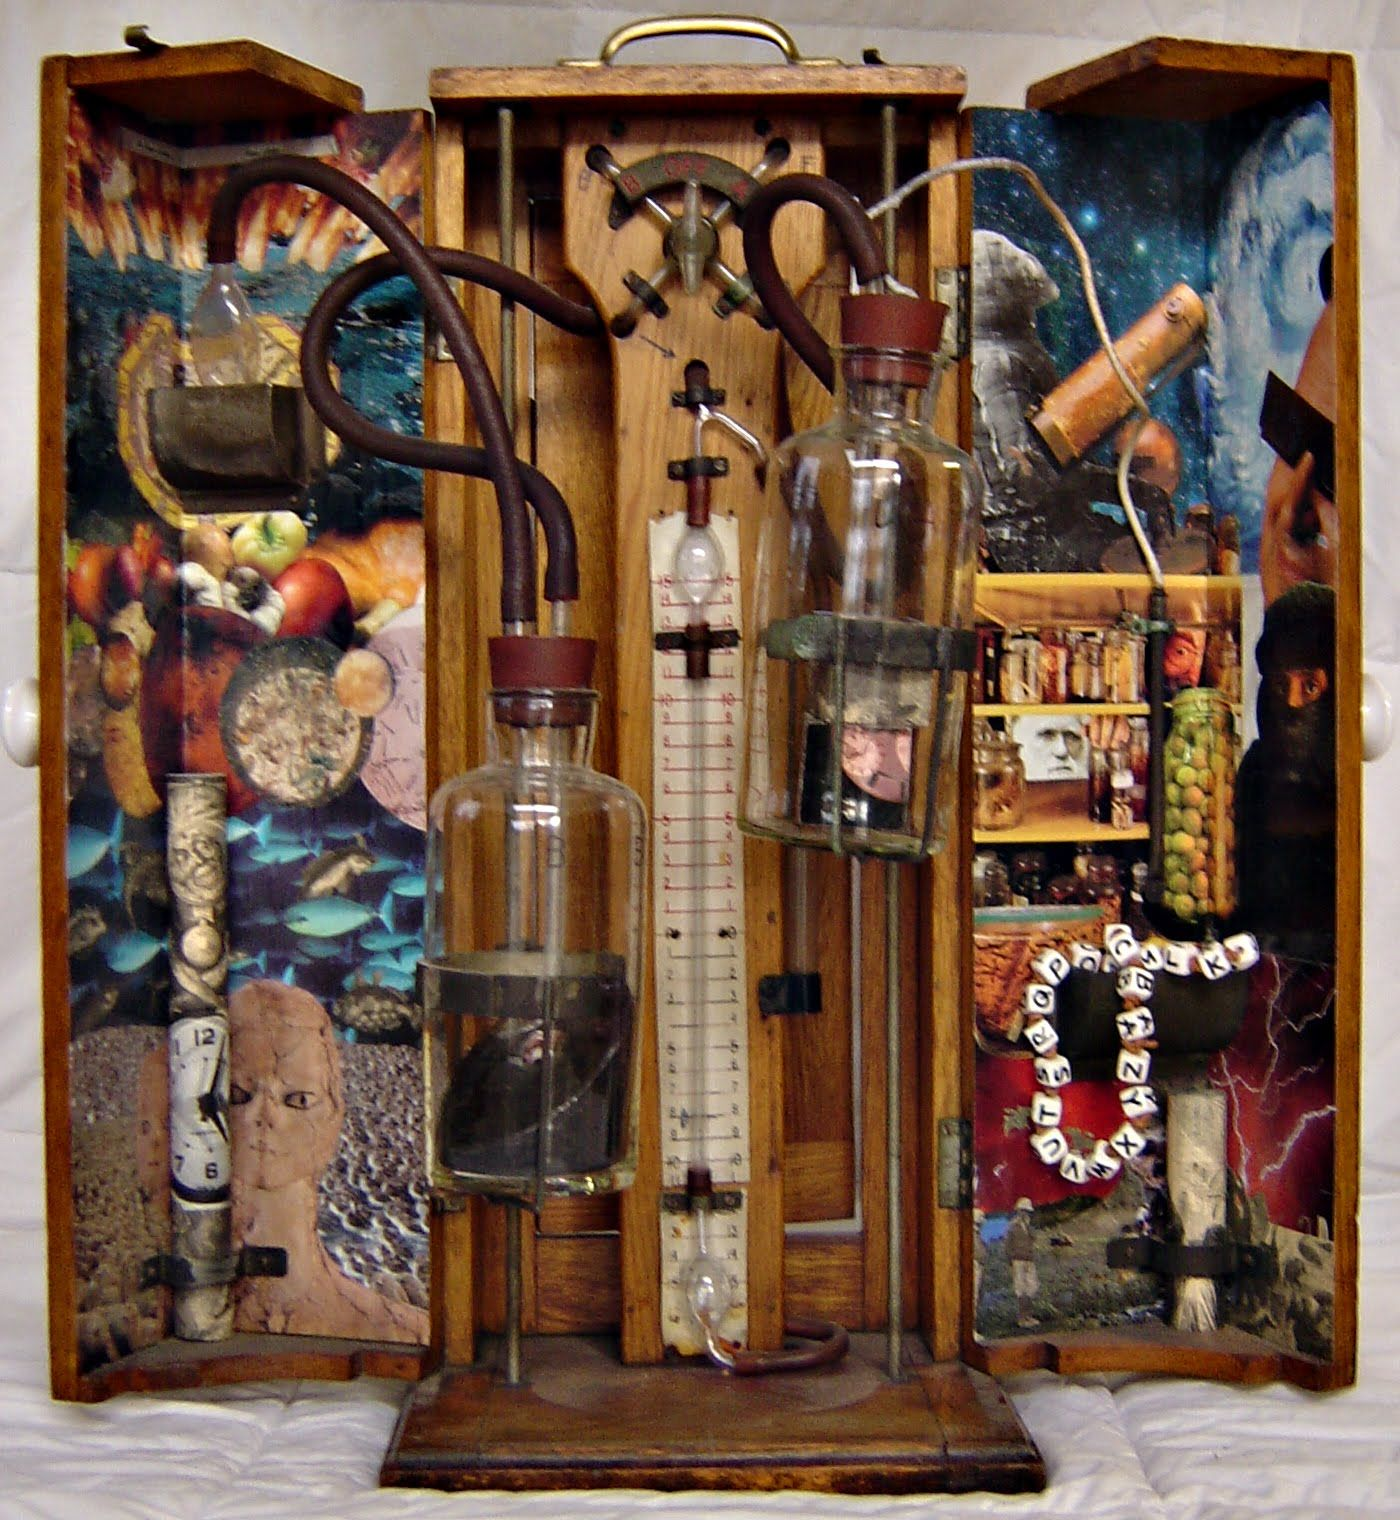 3d design joseph cornell found art pinterest joseph for 3d sculpture artists